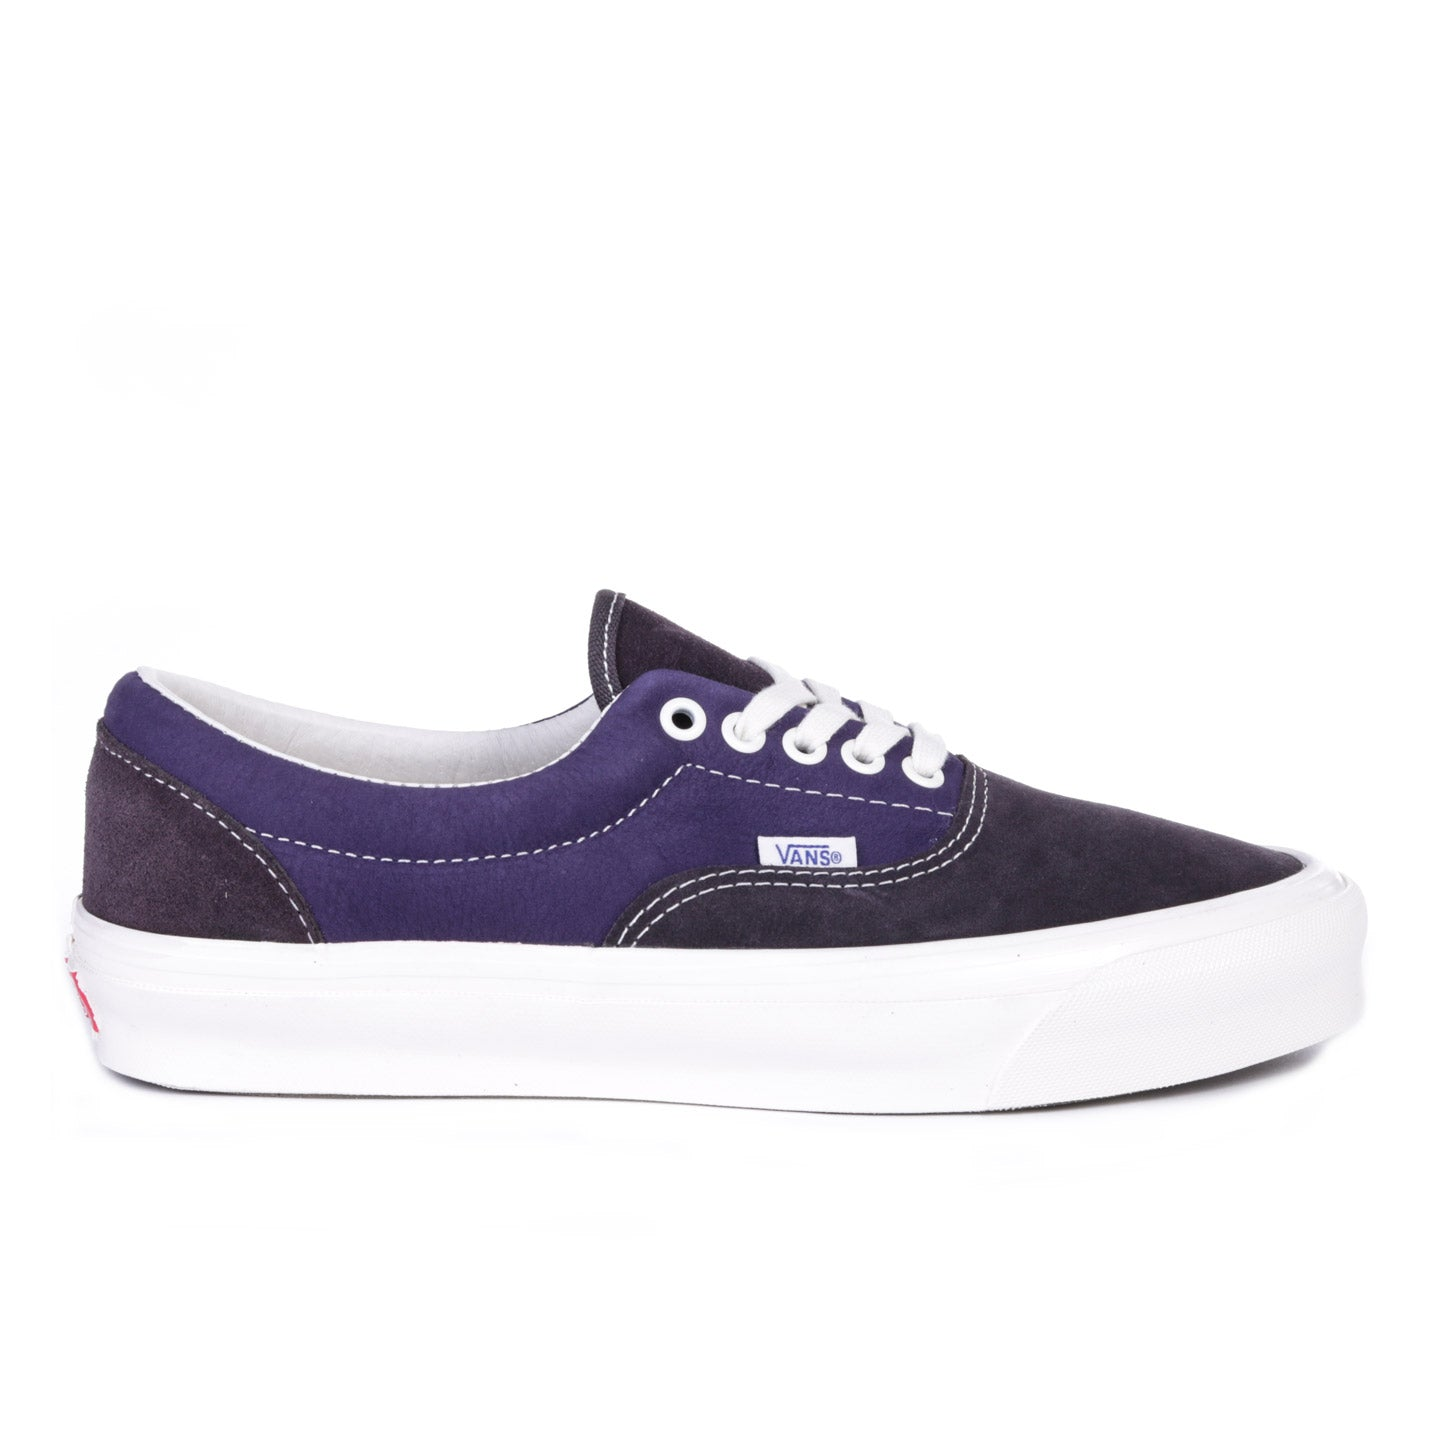 VAULT BY VANS OG ERA LX SHALE / PURPLE